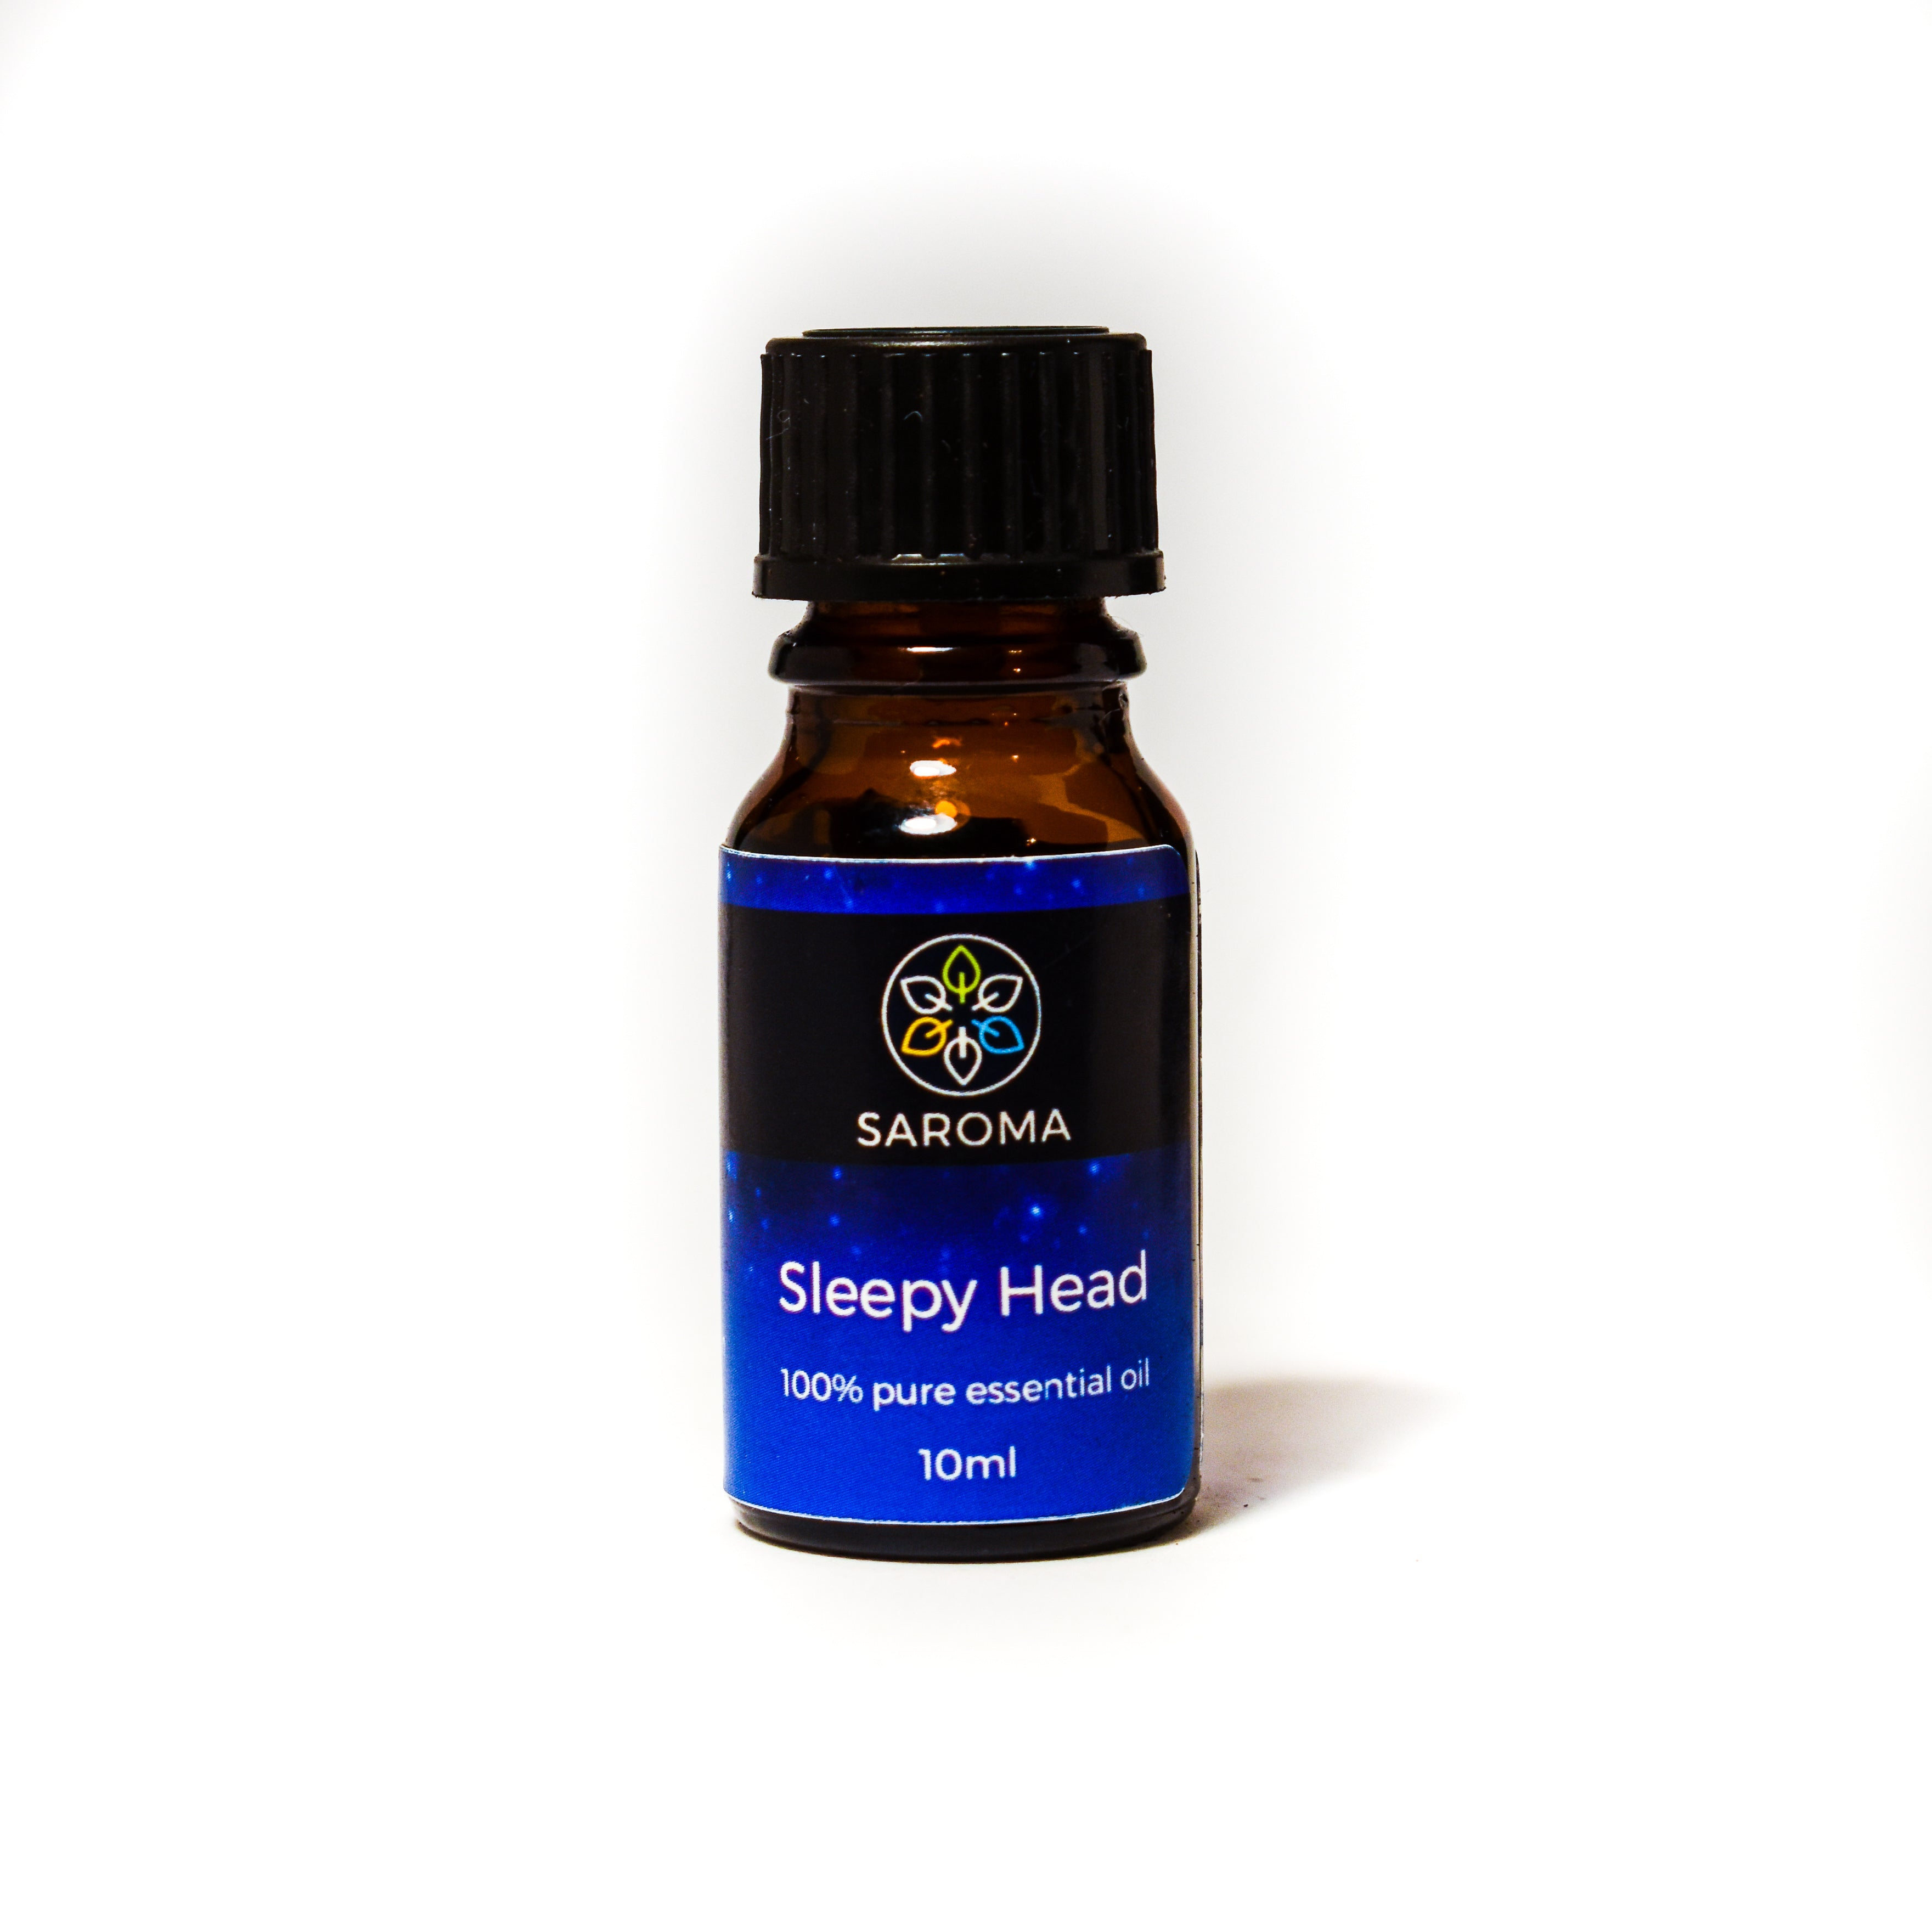 Saroma Sleepy Head Essential Oil Blend